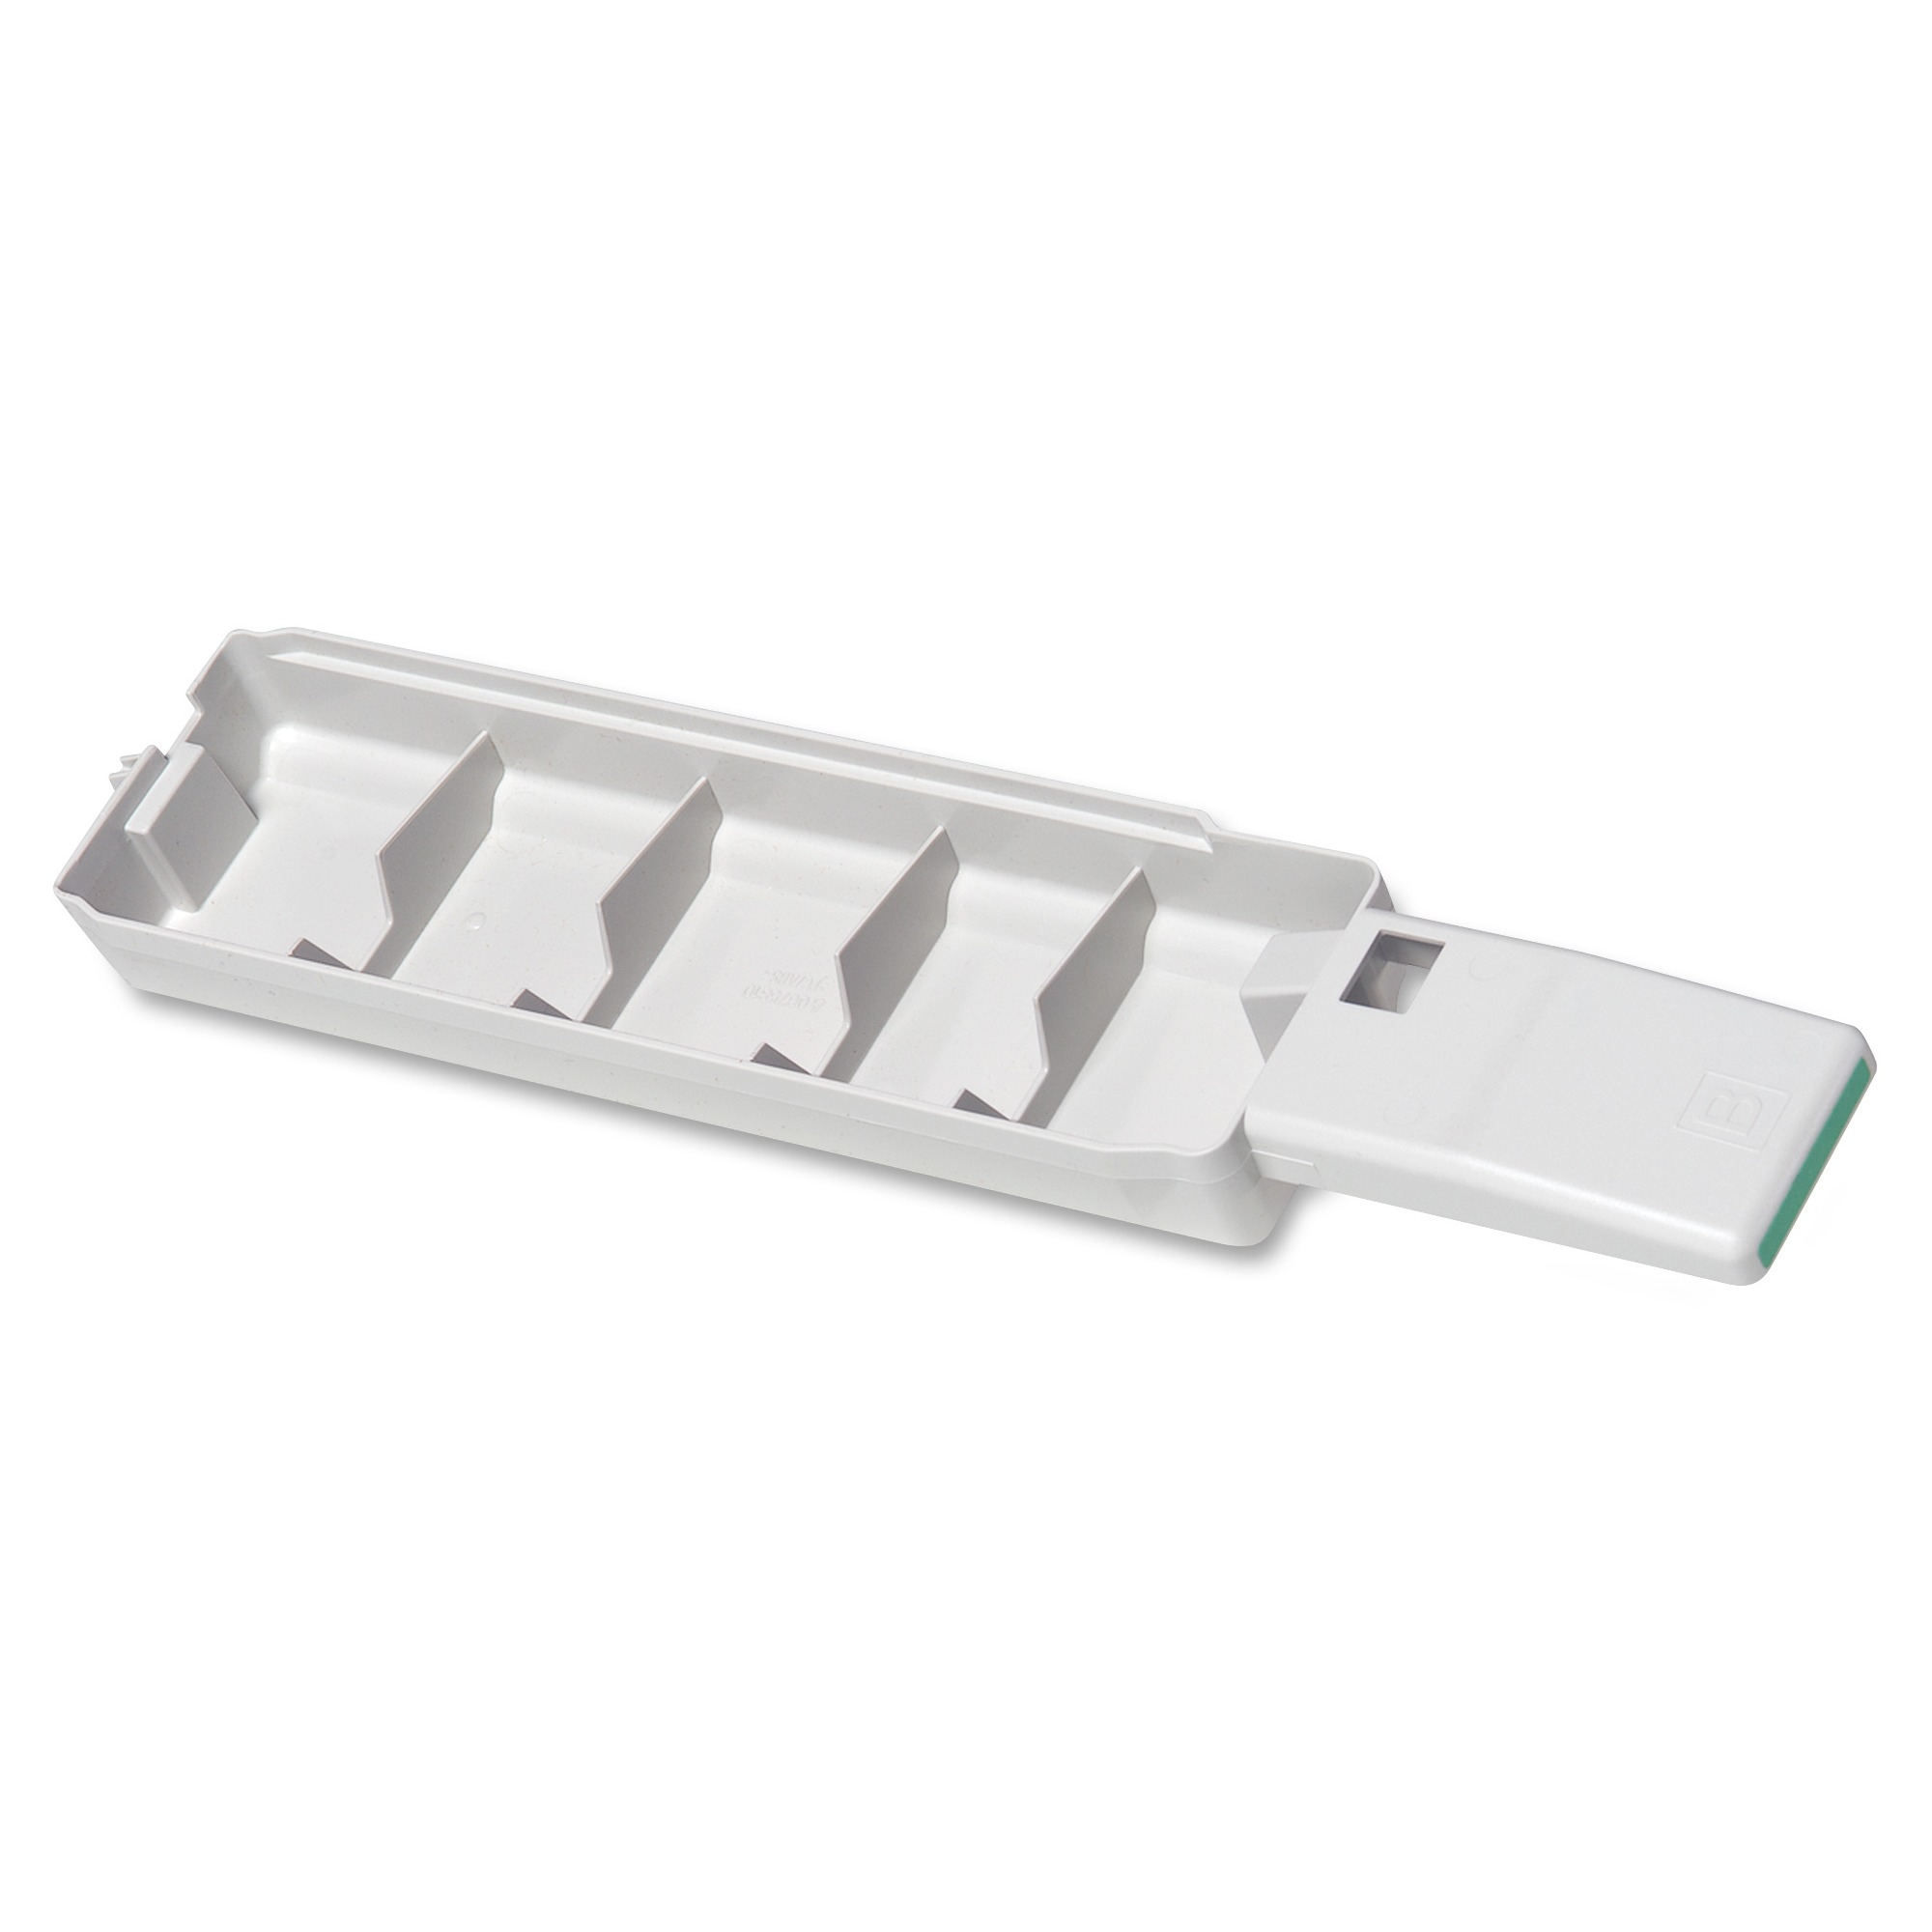 Phaser 8860MFP - Waste ink tray - for ColorQube 8570 8580 8700 8870 8880 8900 Phaser 8500 8550 8560 8860